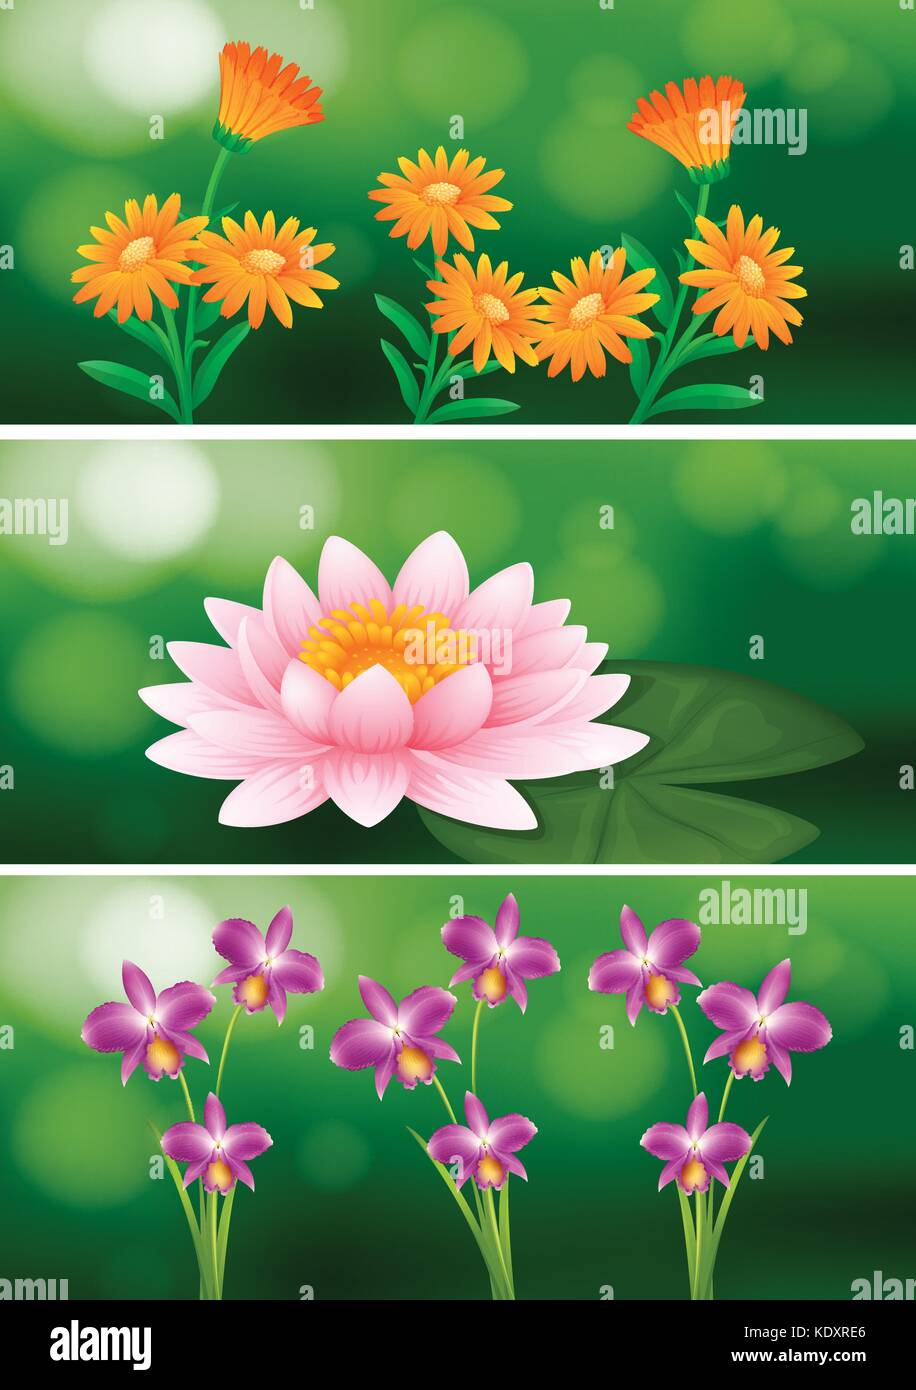 Background design with different types of flowers illustration stock background design with different types of flowers illustration izmirmasajfo